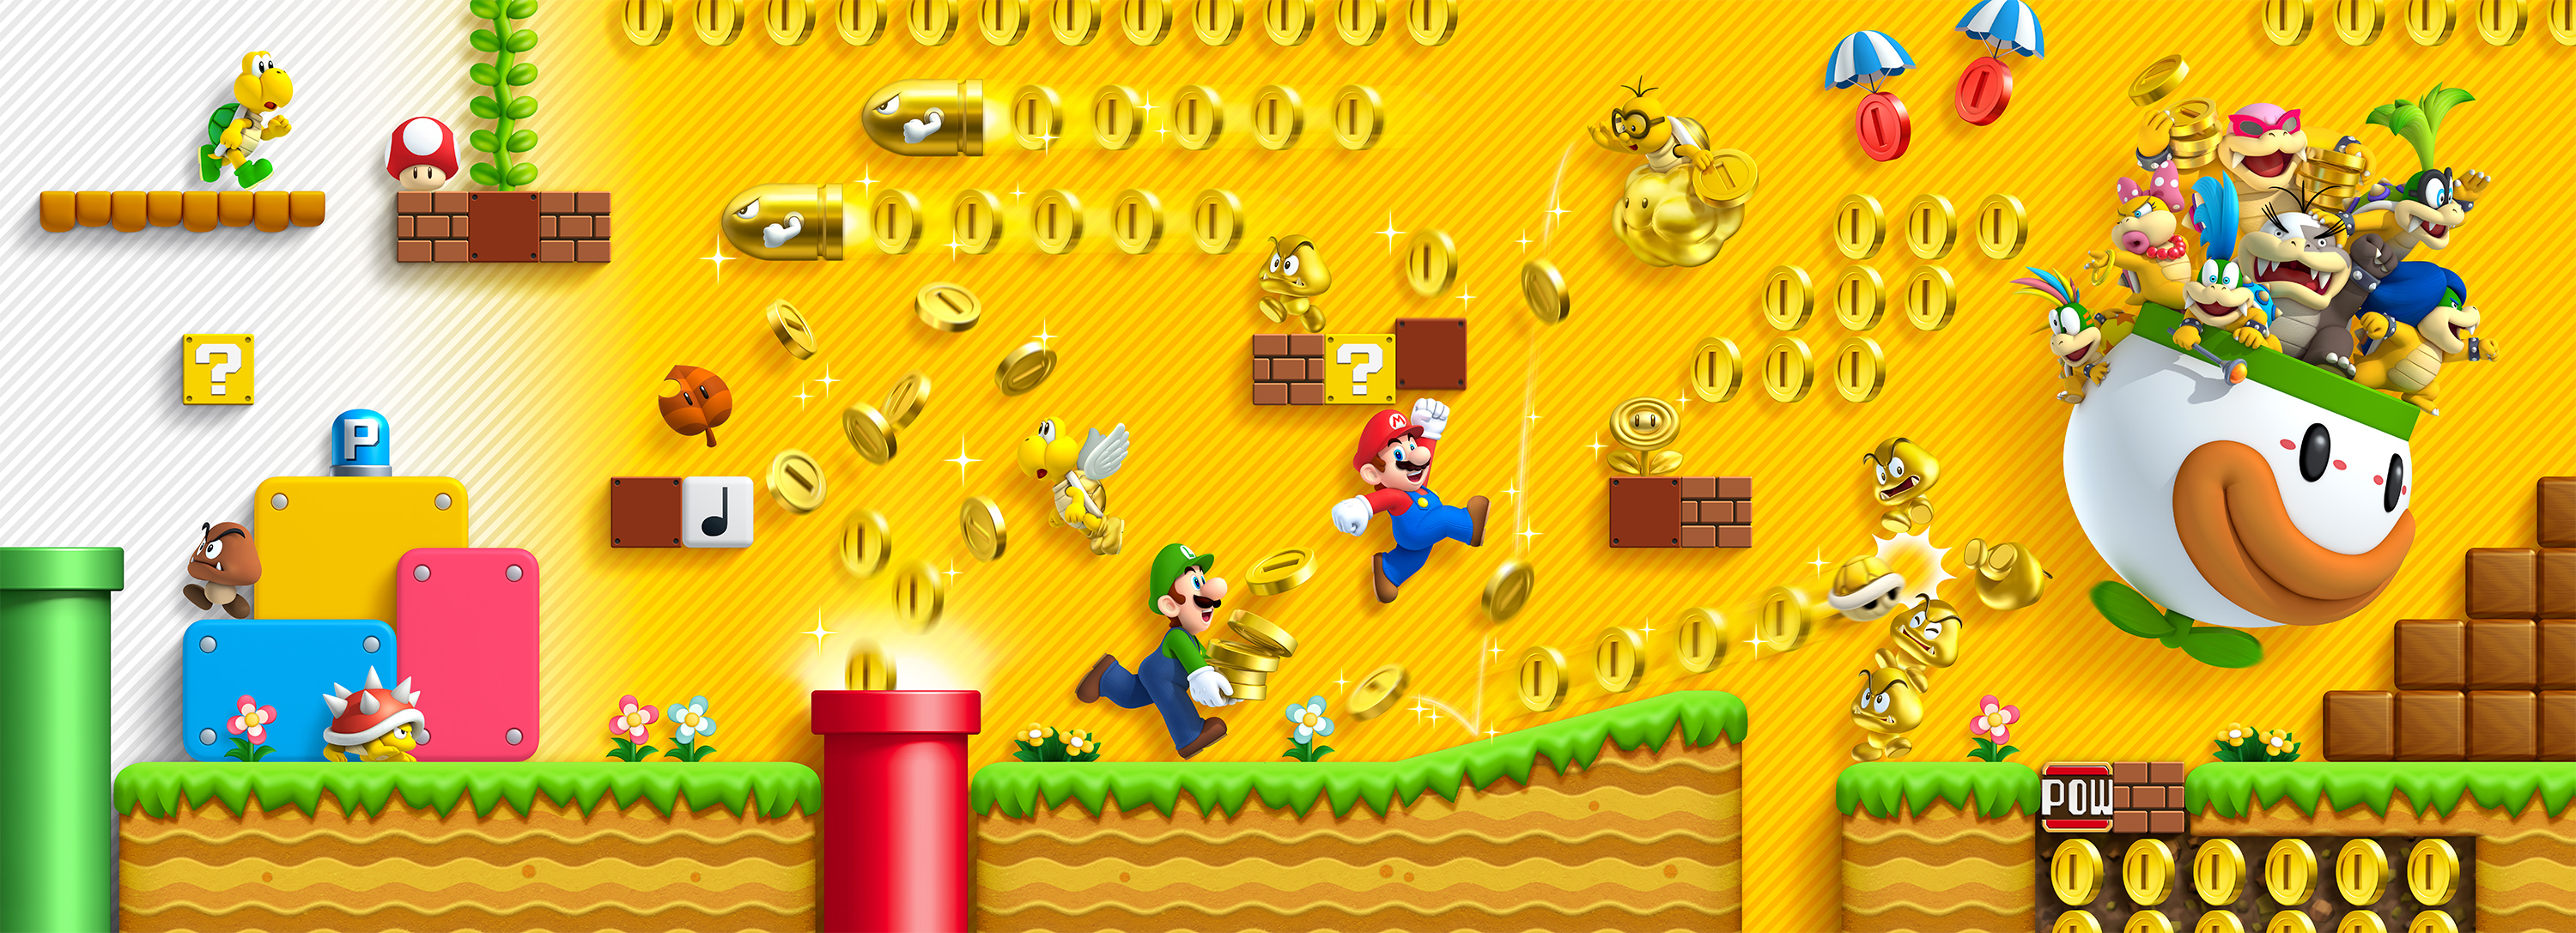 Super Mario Bros 2 Cheats